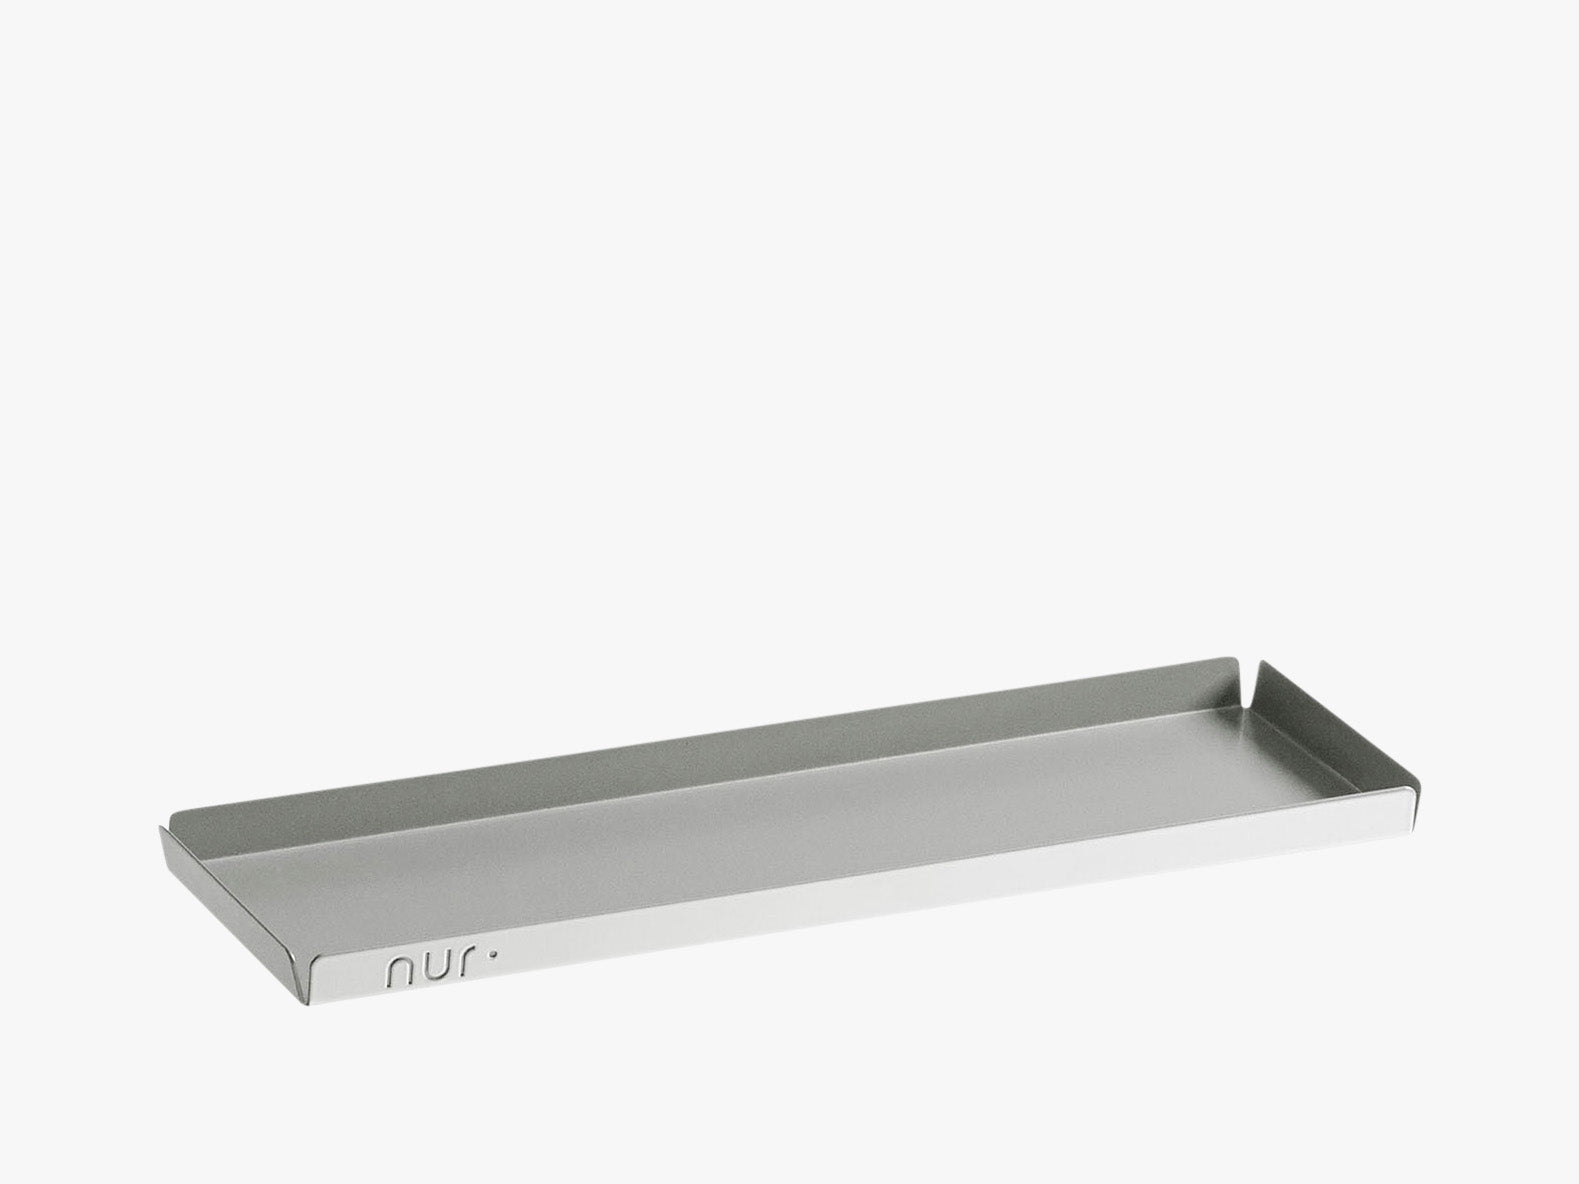 NUR Tray Long, Light Grey fra NUR